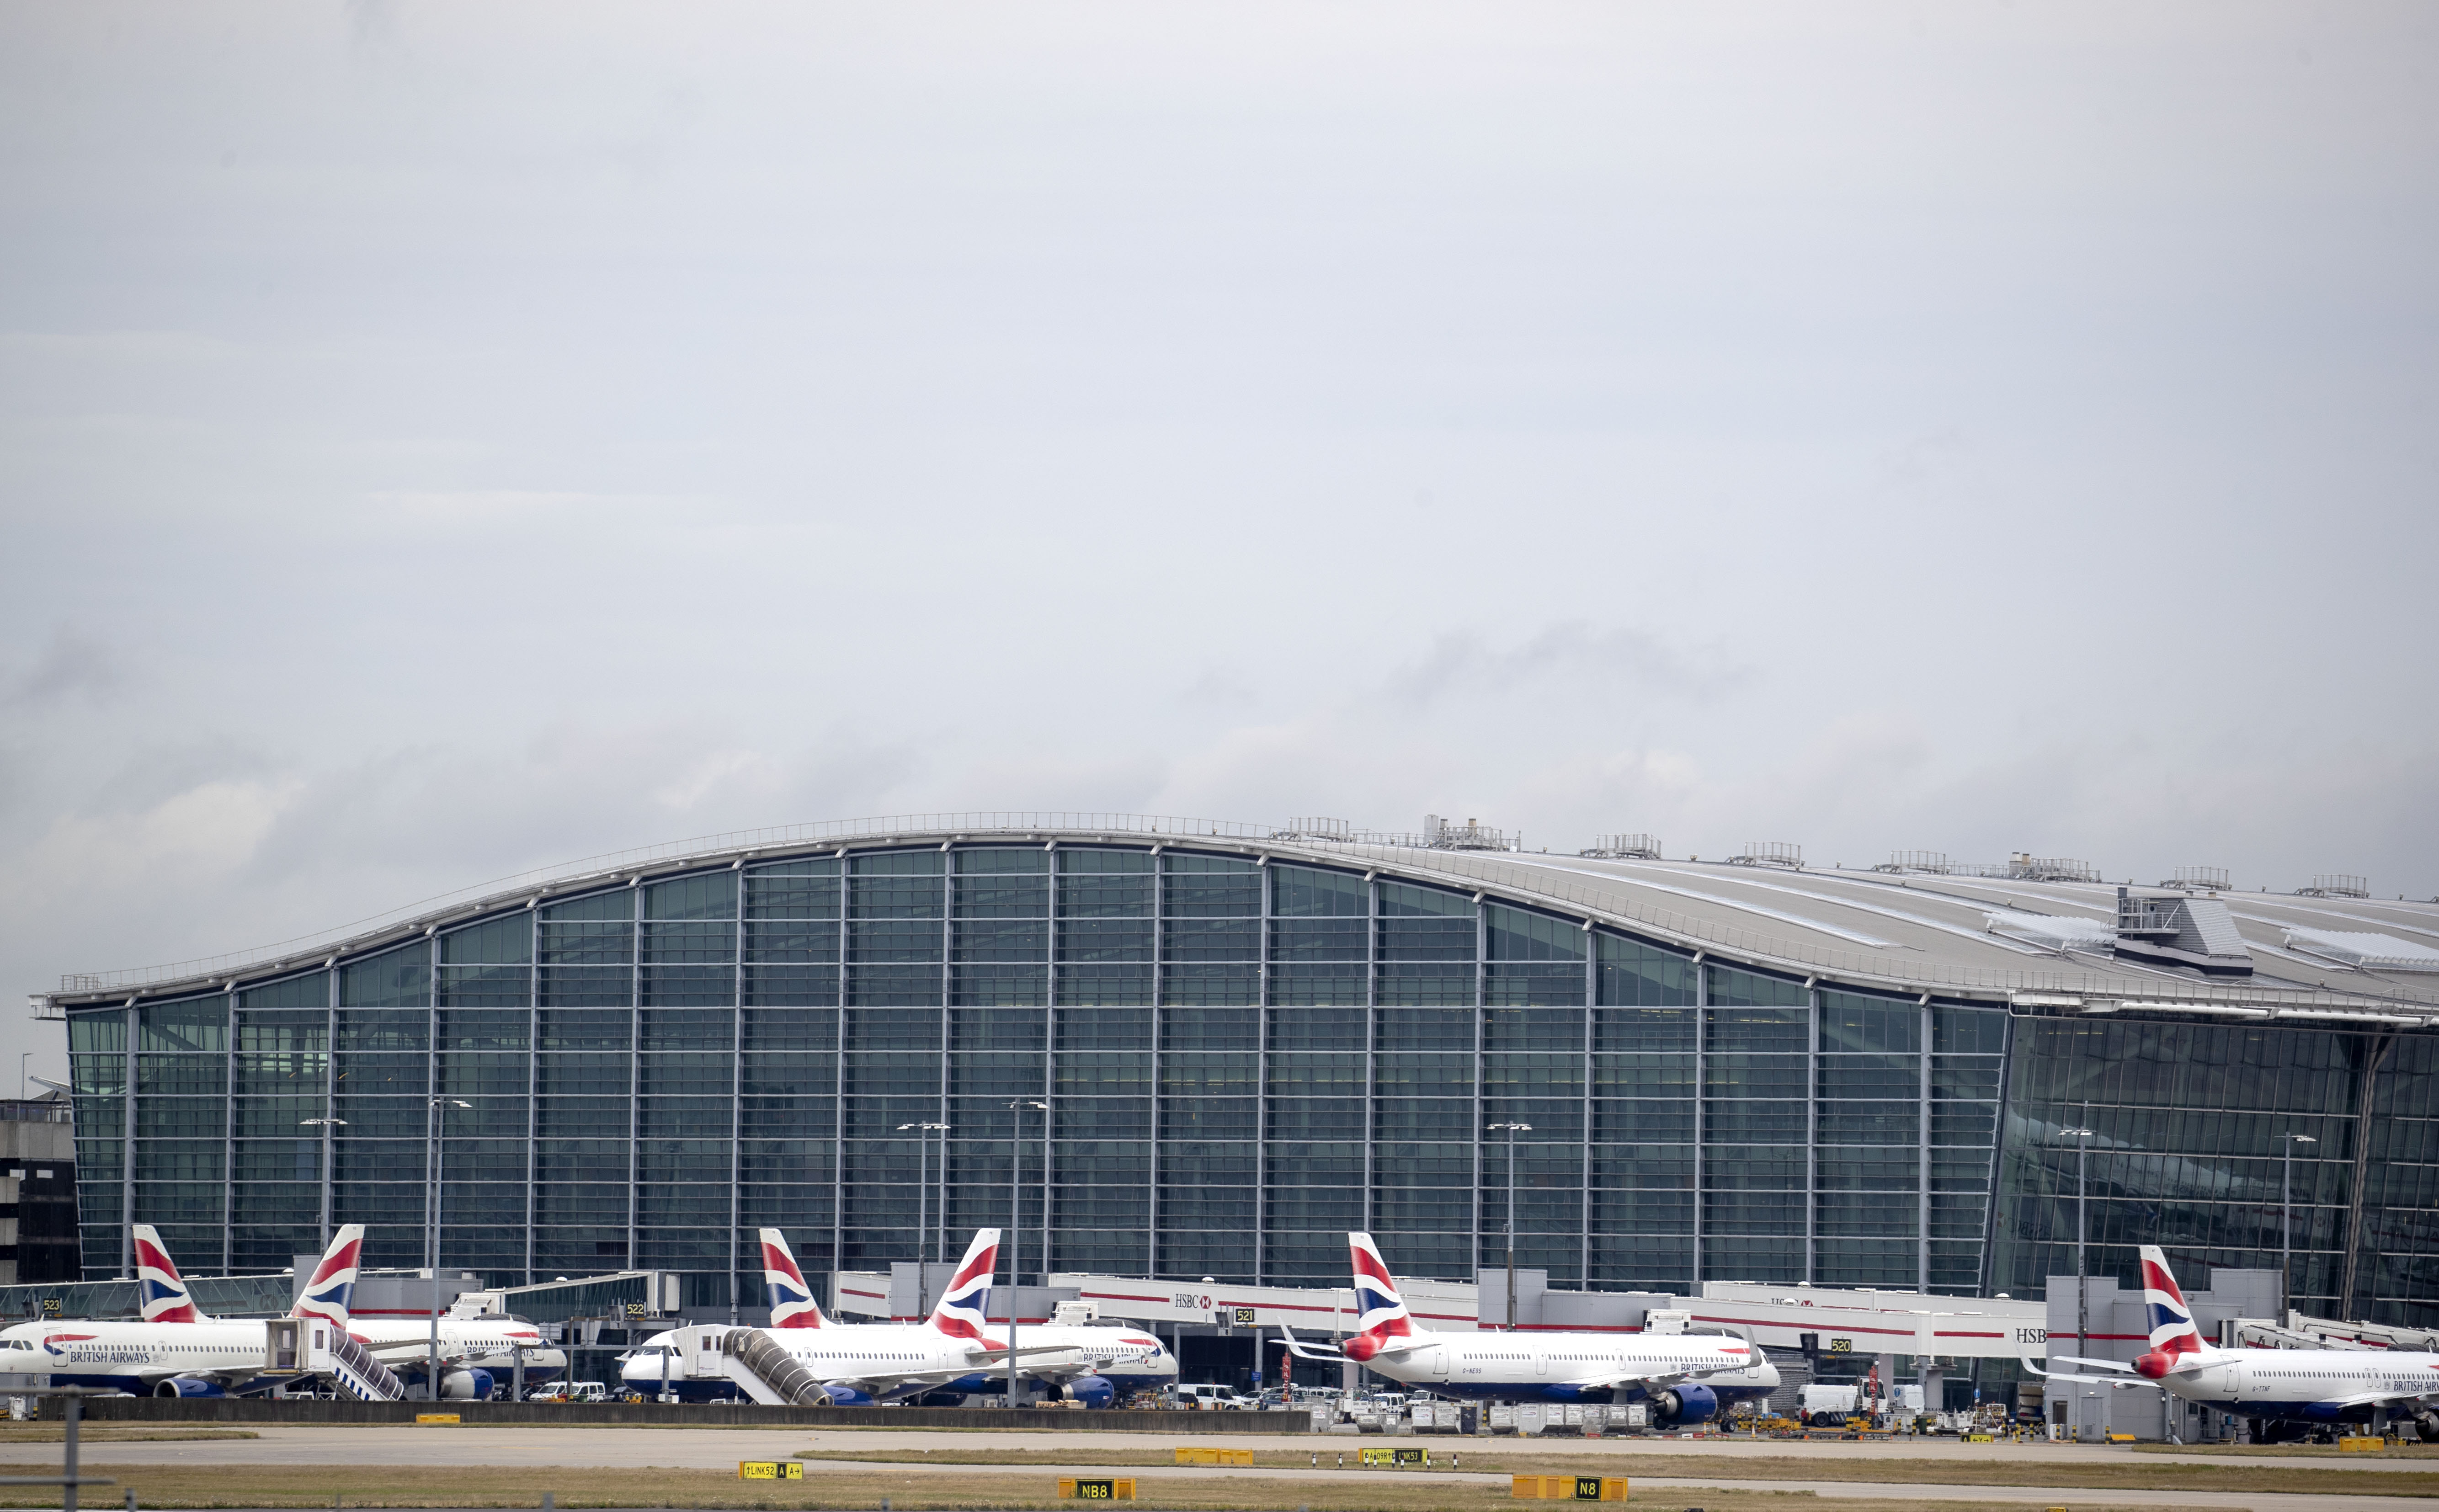 British Airways planes at Terminal Five at Heathrow Airport, London, on day one of the first-ever strike by British Airways pilots. The 48 hour walk out, in a long-running dispute over pay, will cripple flights from Monday, causing travel disruption for tens of thousands of passengers. (Photo by PA/PA Images via Getty Images)